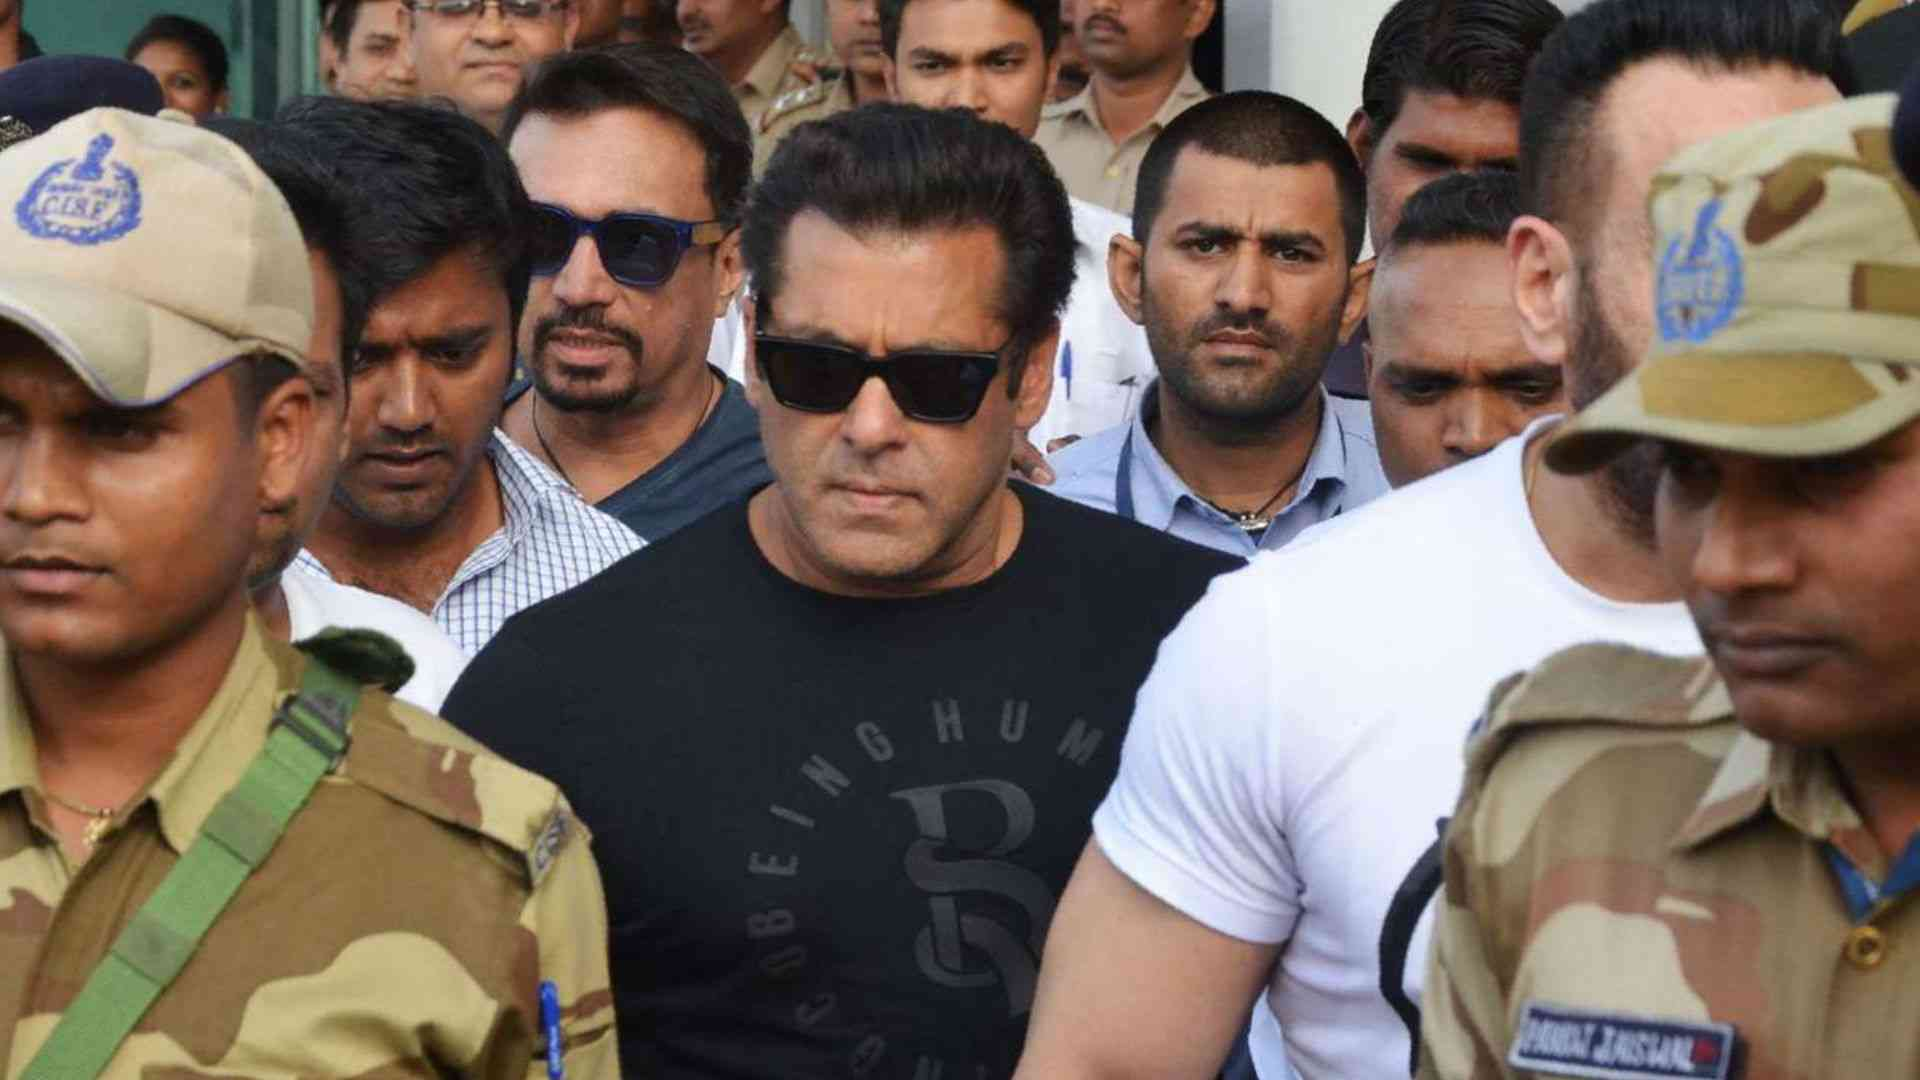 Court's permission needed every time while Salman travels abroad